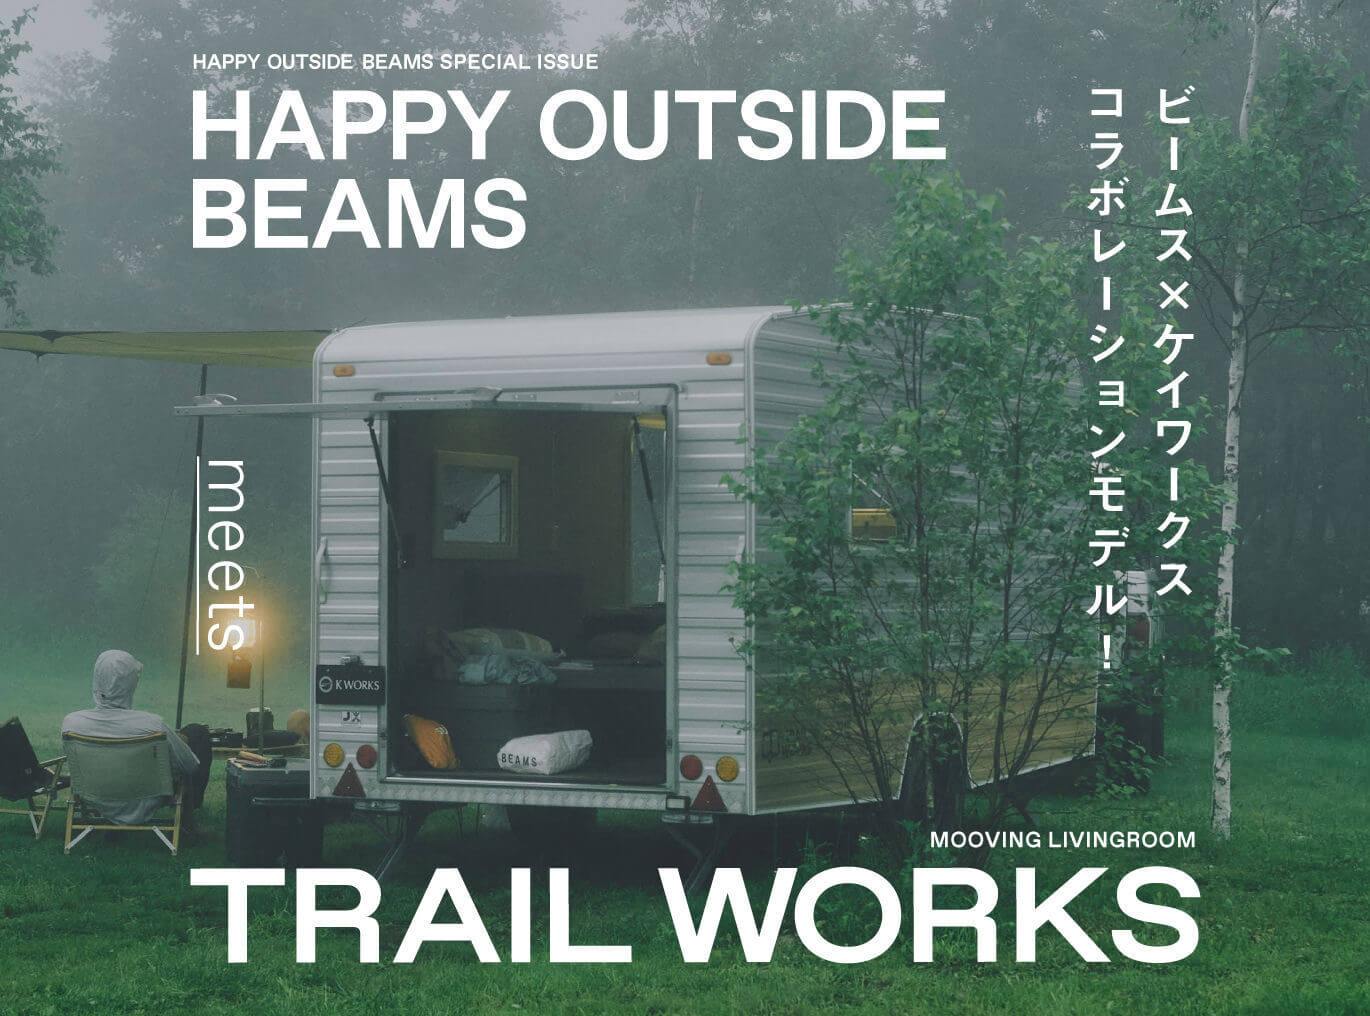 HAPPY OUTSIDE BEAMS TRAIL WORKS ビームス×ケイワークス コラボレーションモデル!